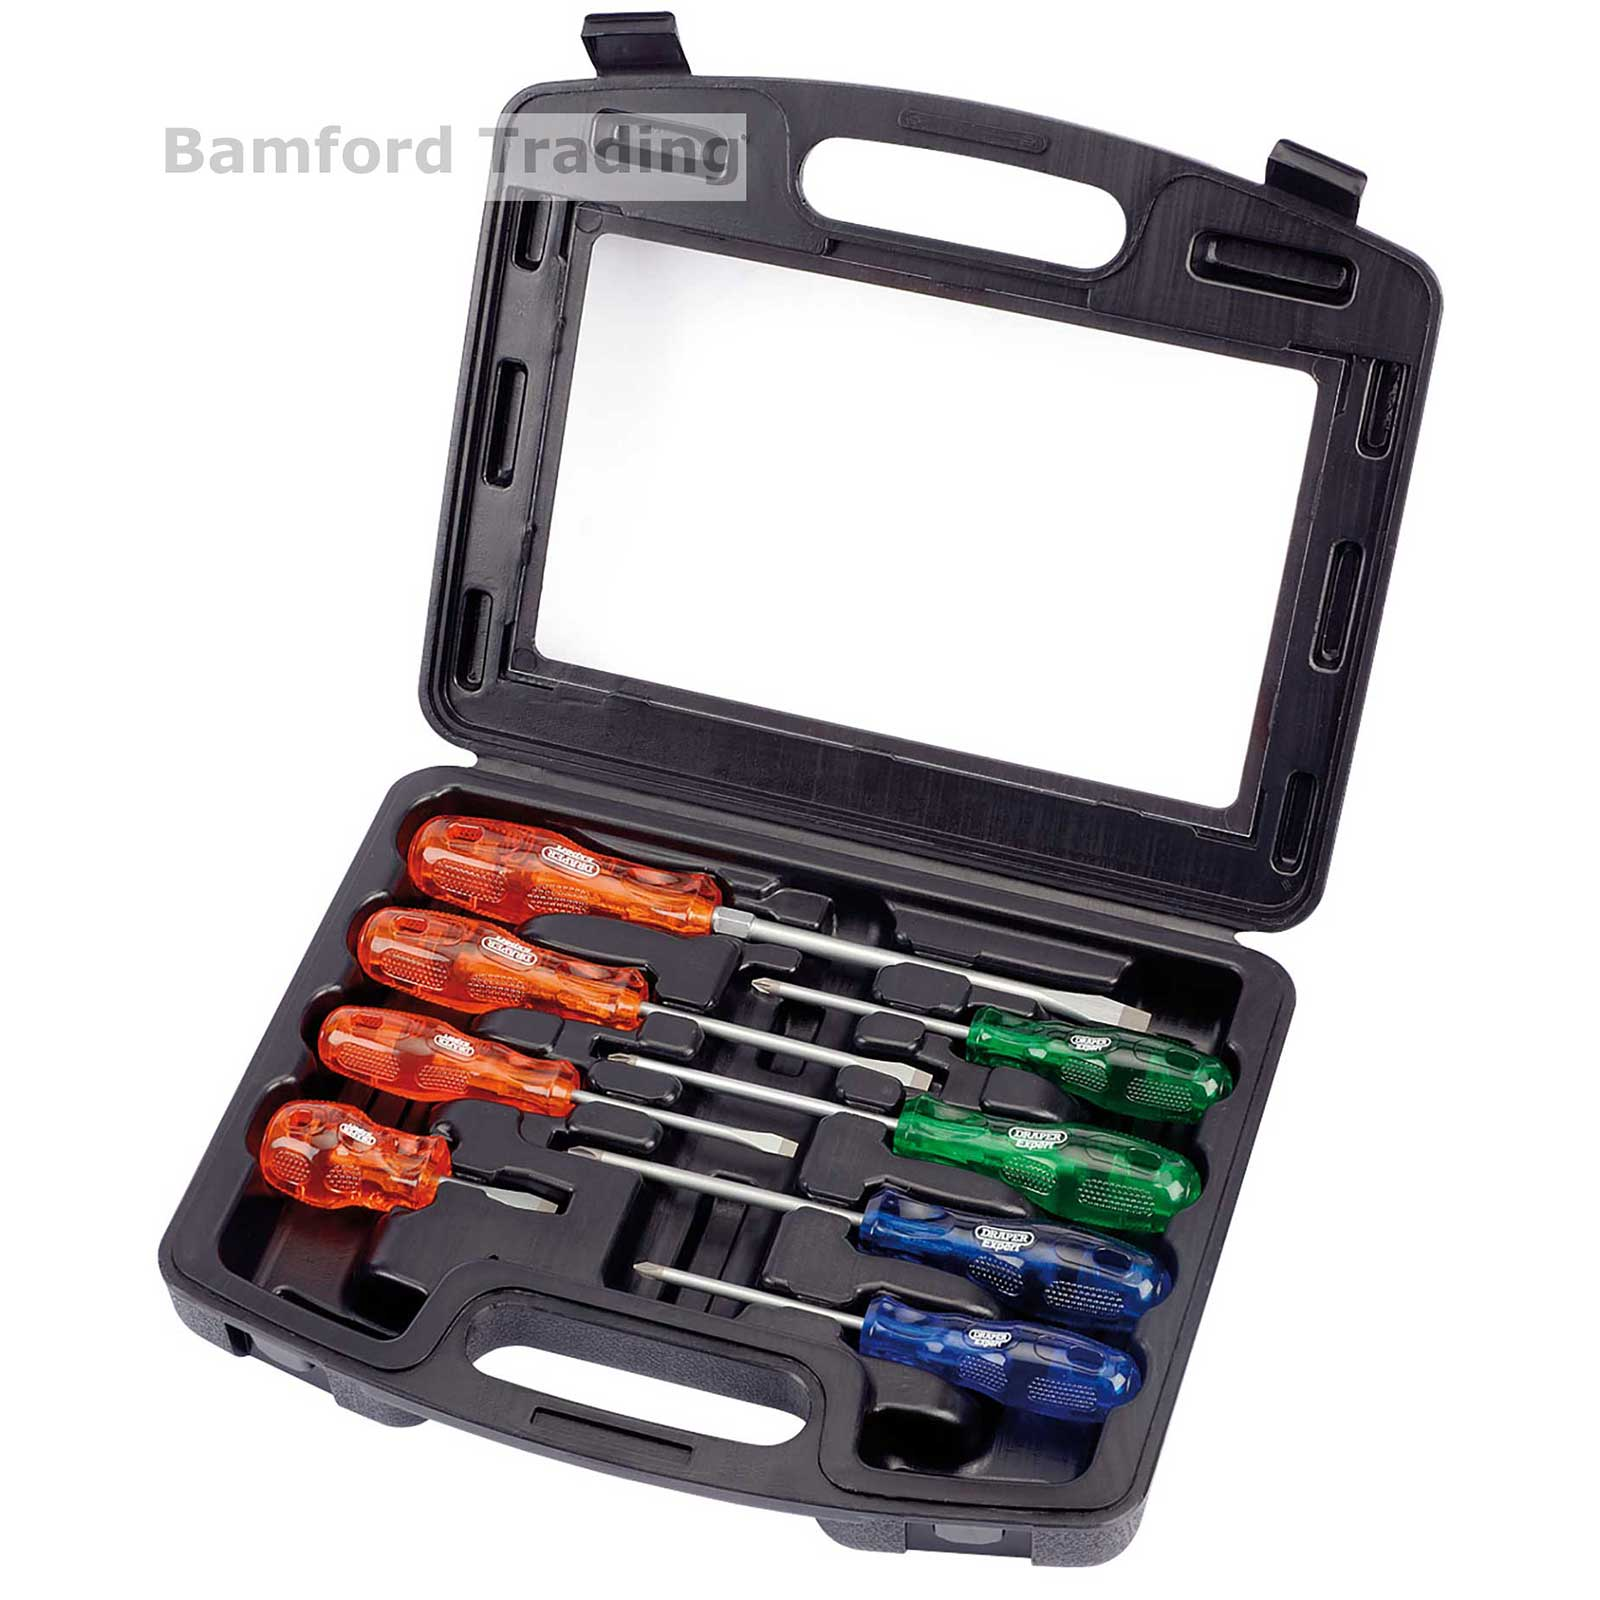 draper expert engineers screwdriver set quality 8 piece professional tool case ebay. Black Bedroom Furniture Sets. Home Design Ideas